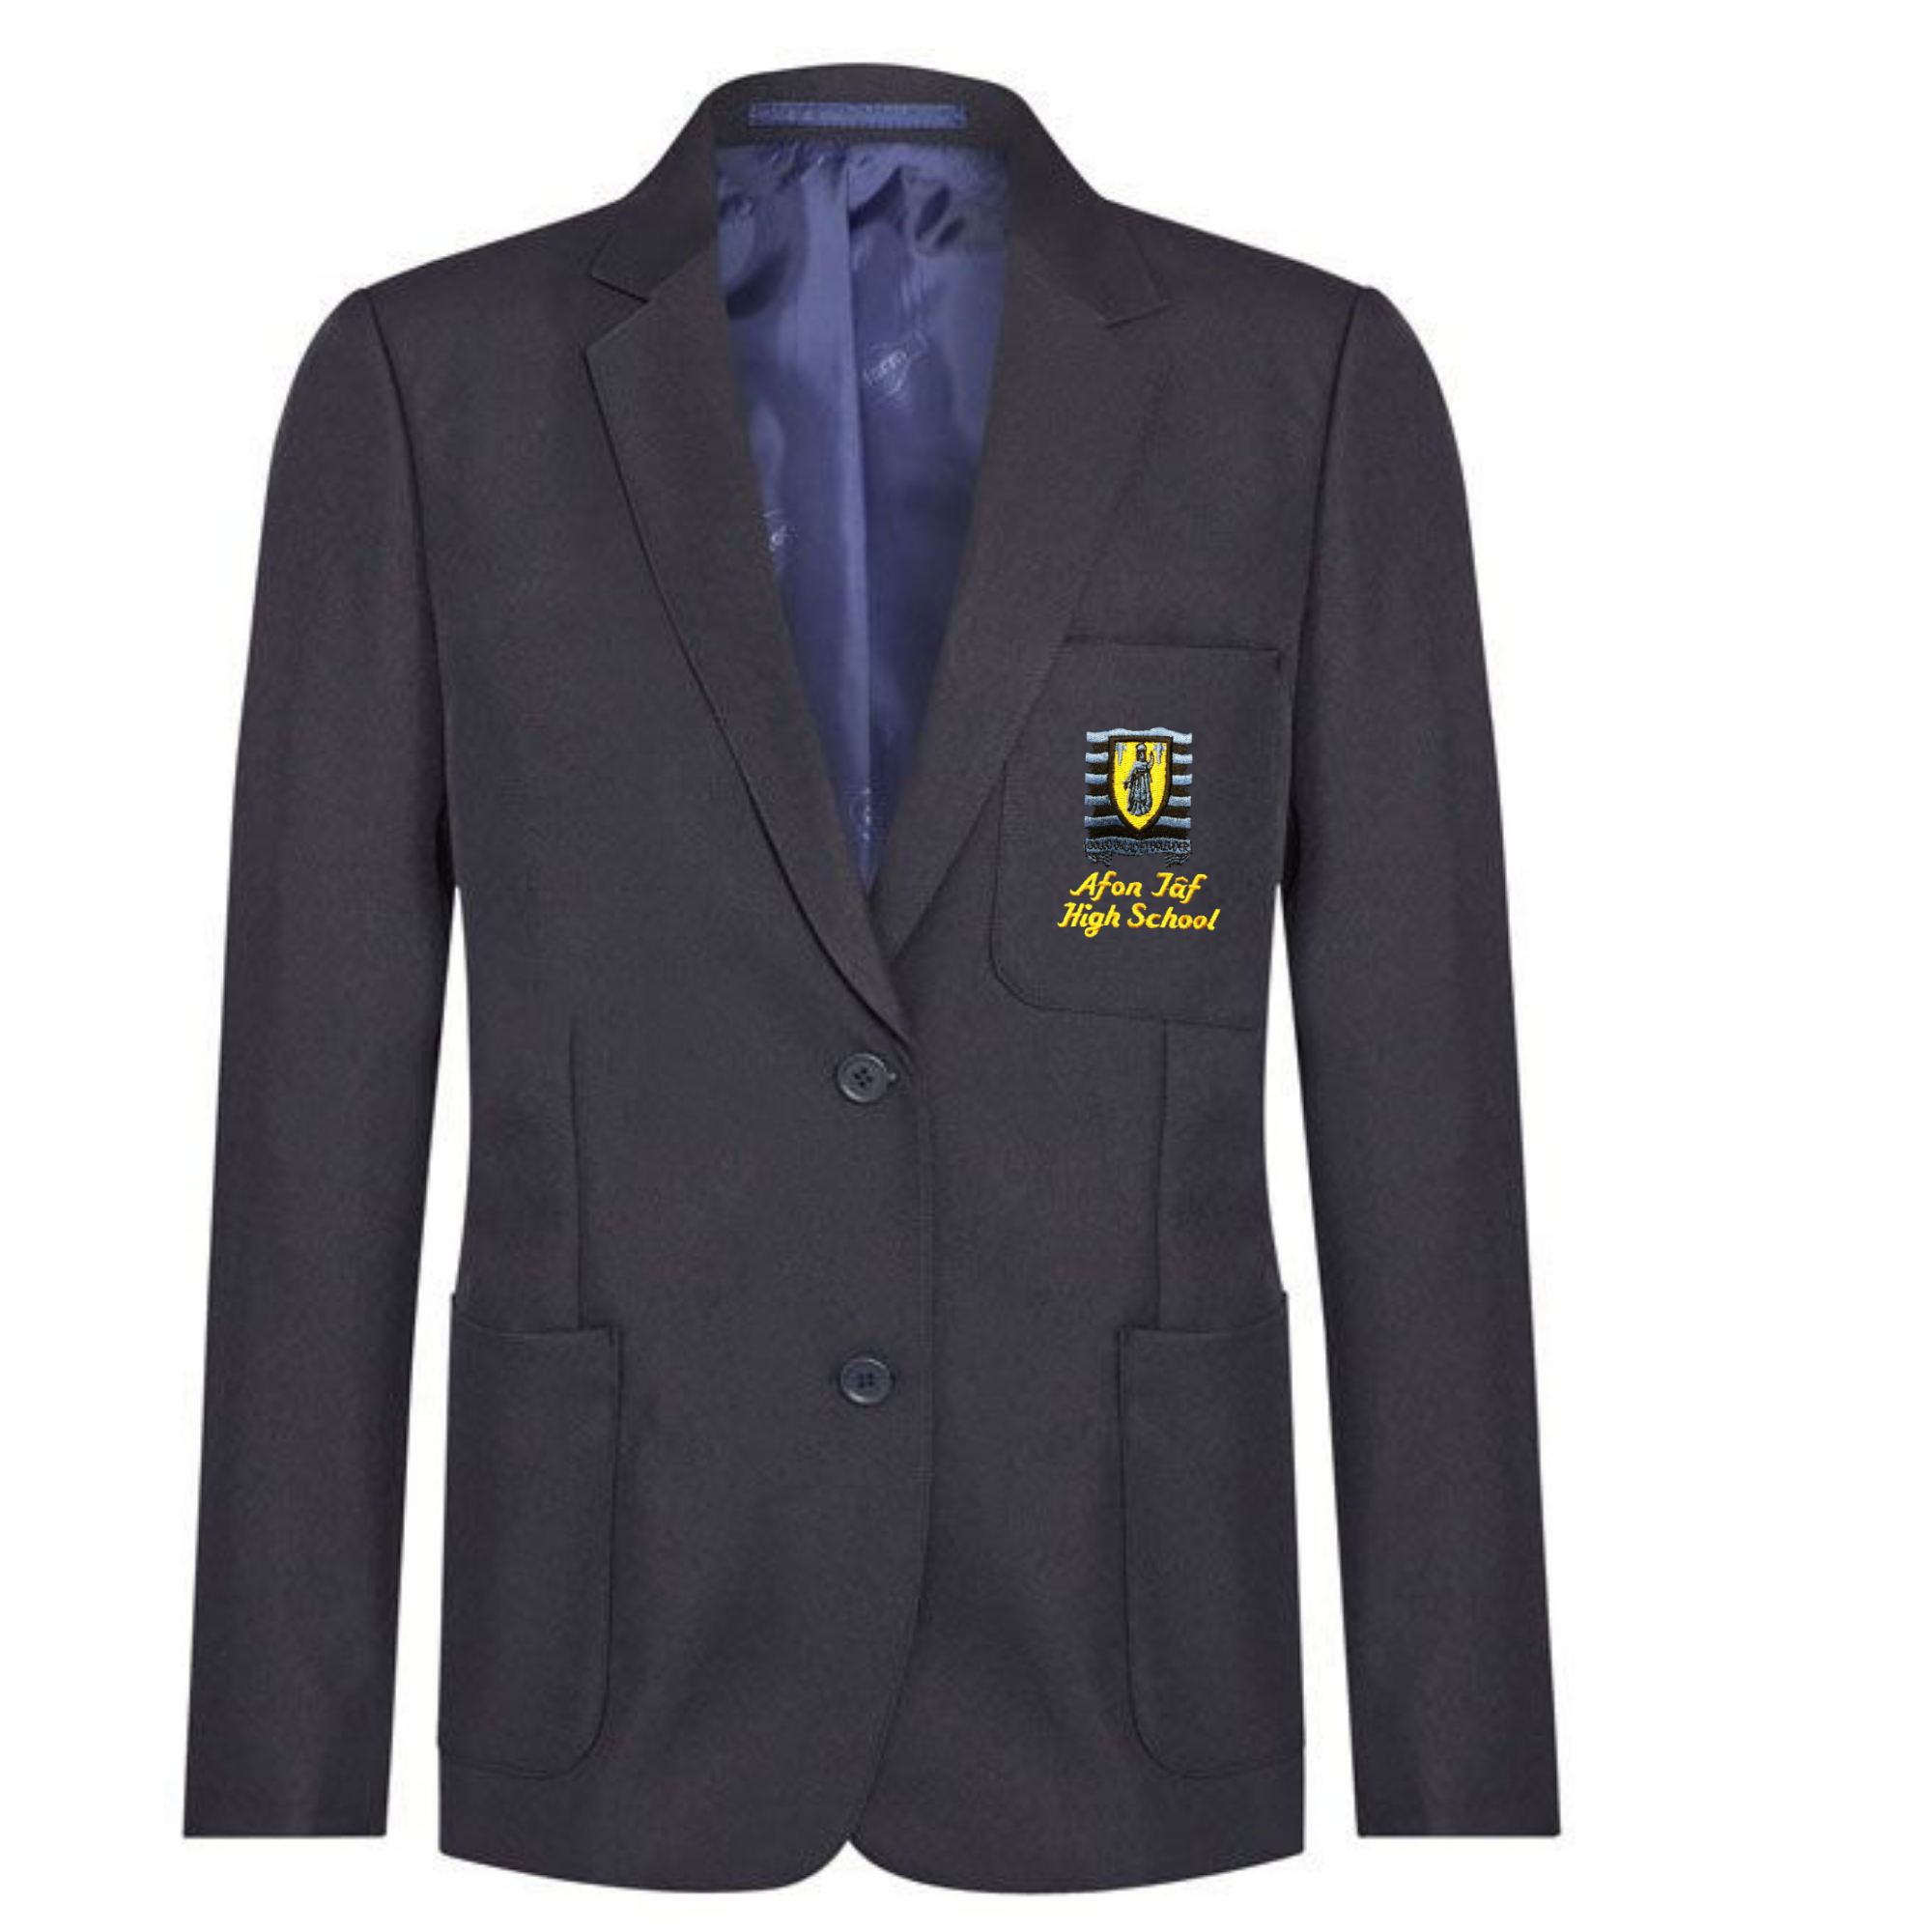 Afon Tâf High School Girls Navy Blazer